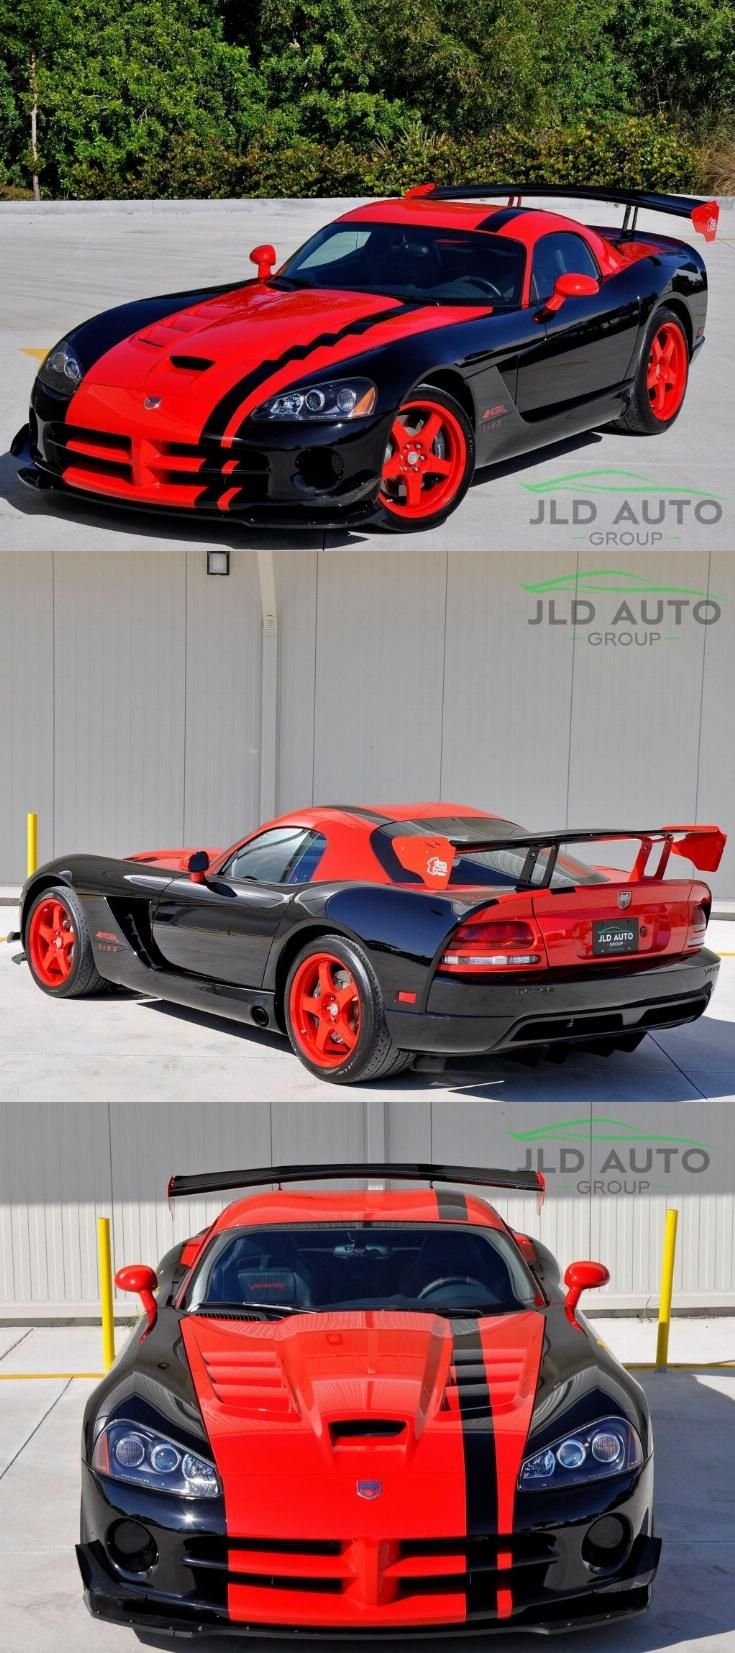 Pin By Tom Hyland On Cars For Sale In 2020 Viper Acr 2010 Dodge Viper Dodge Viper